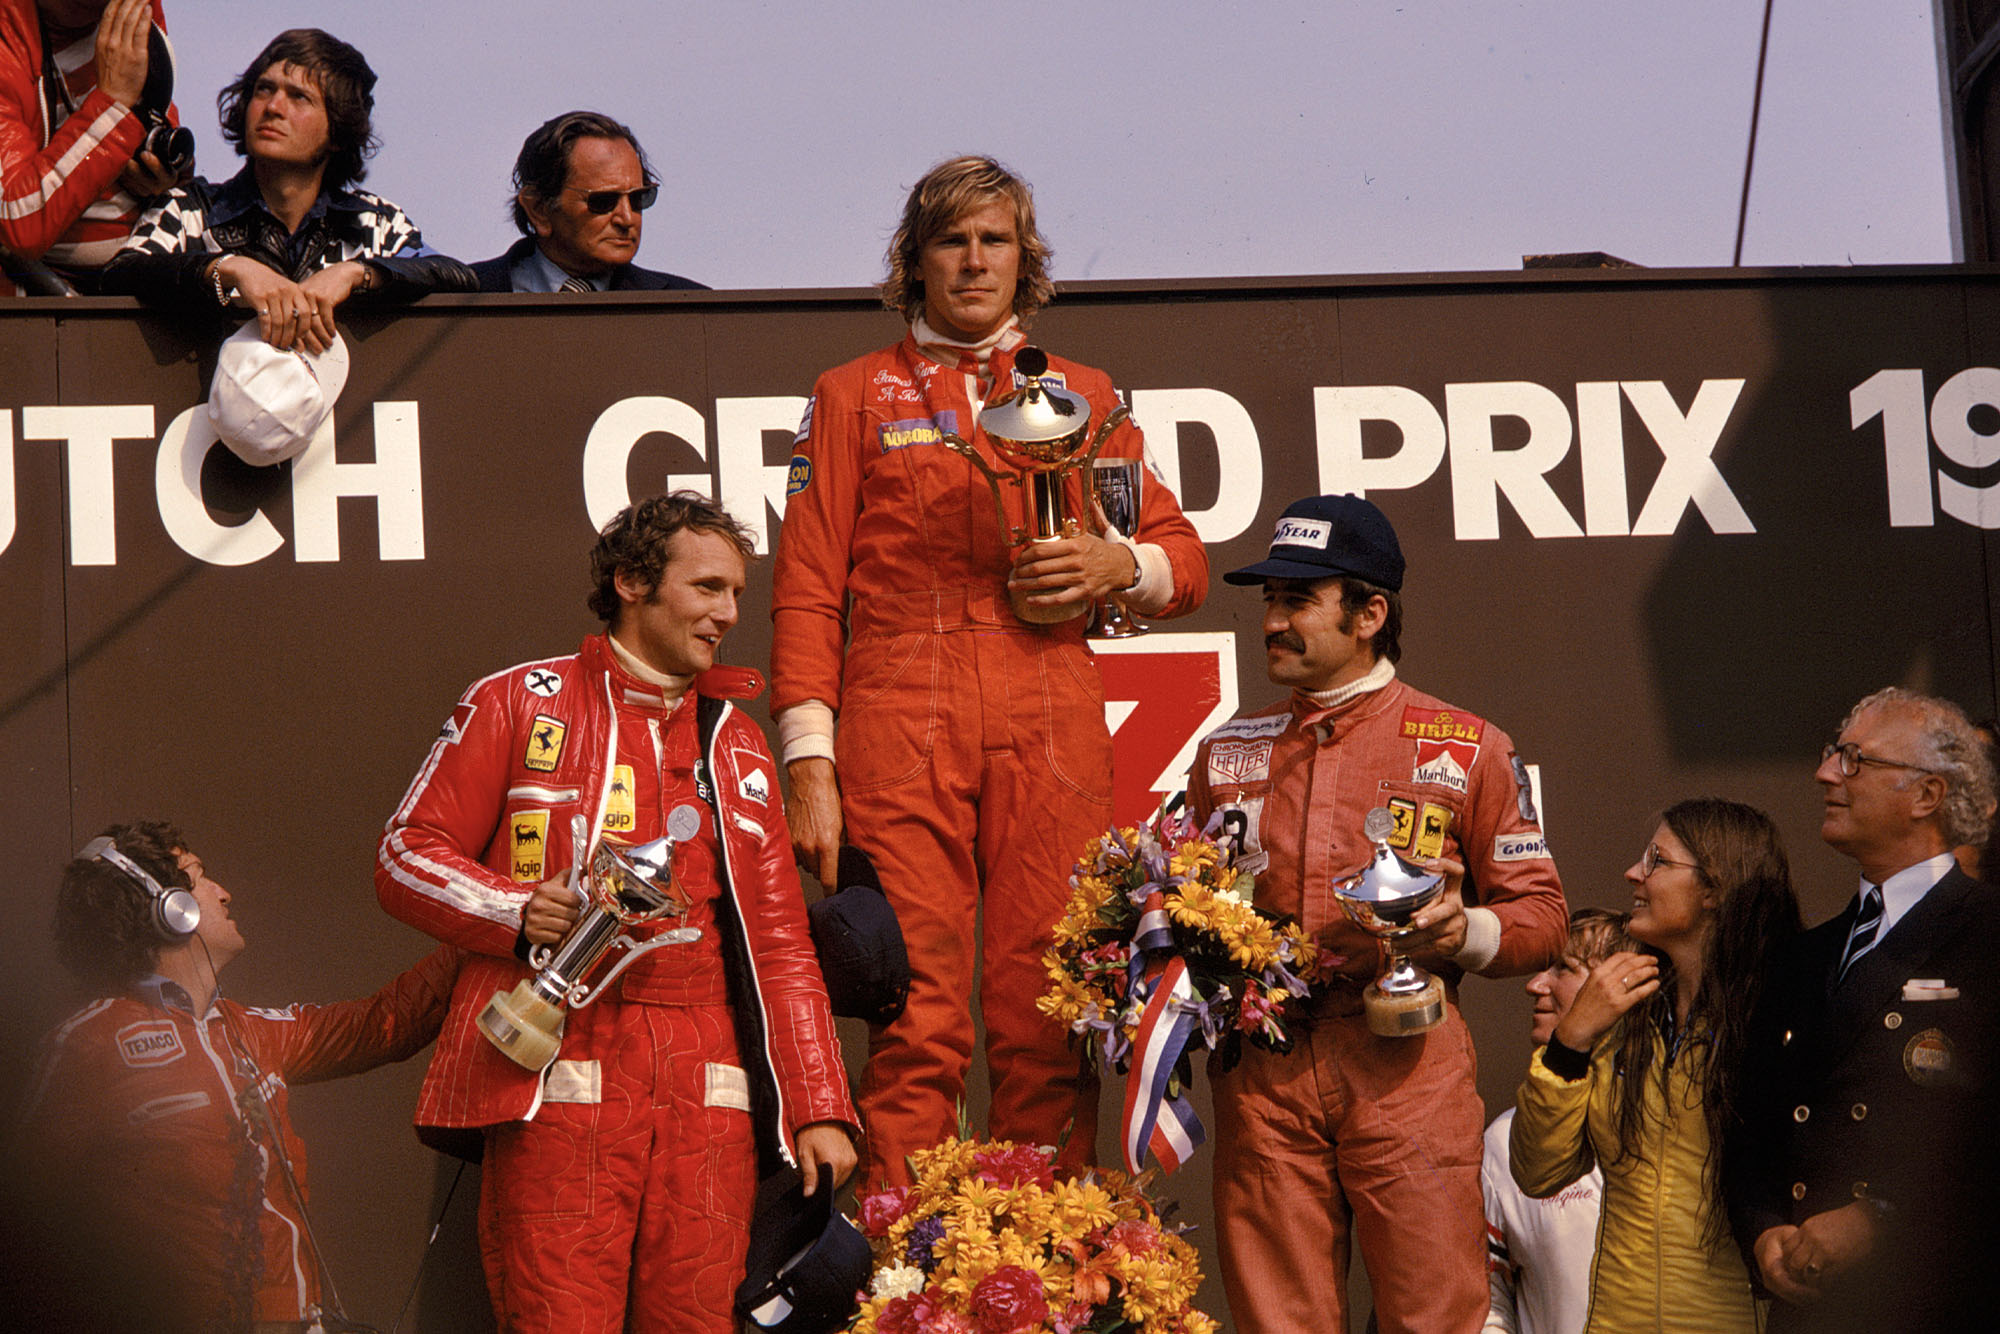 James Hunt (Hesketh) stand son the podium after winning the 1975 Dutch Grand Prix, Zandvoort.